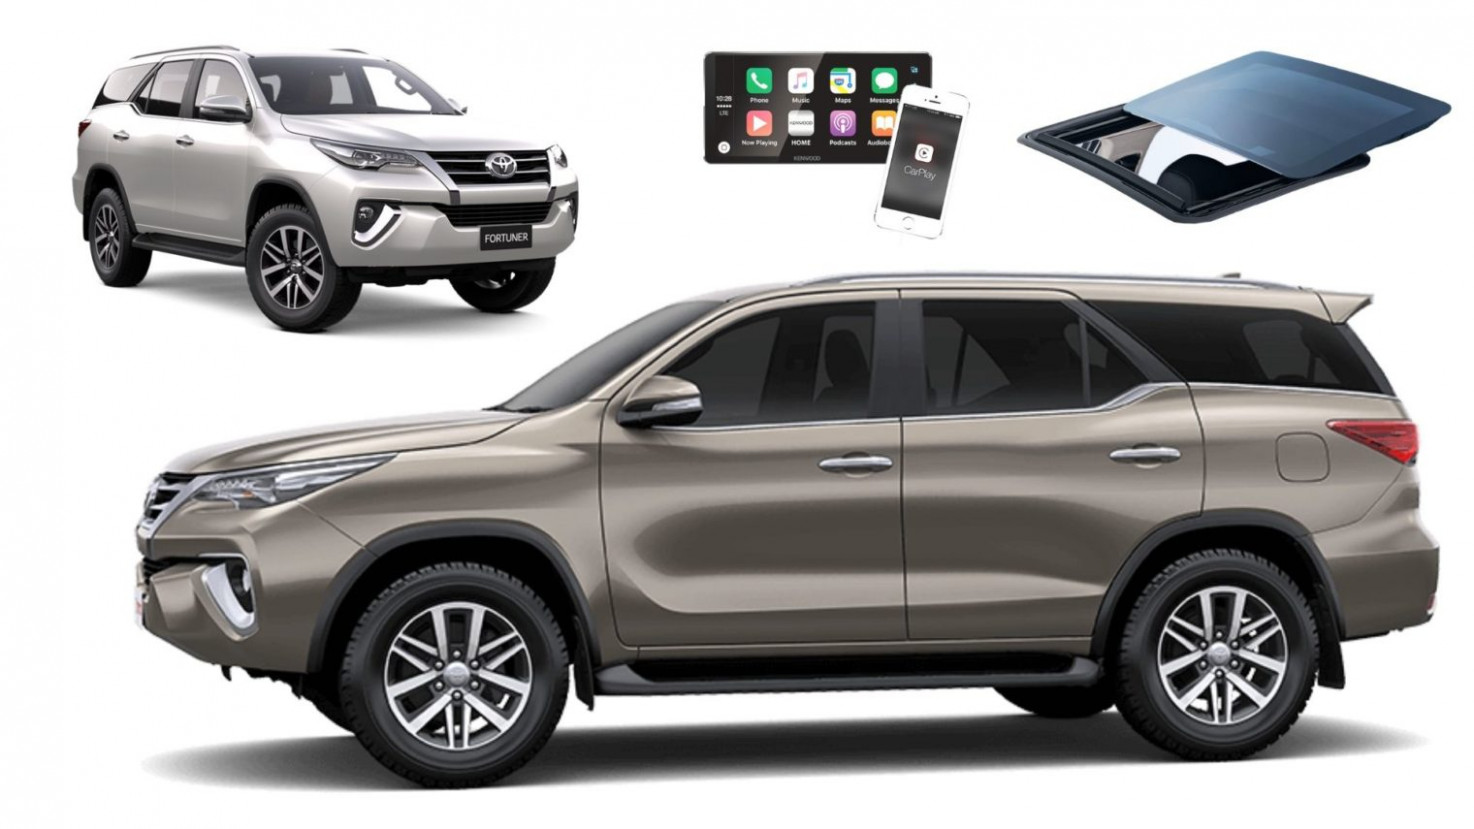 11 New Features Toyota Should Add To The Fortuner SUV - toyota fortuner 2020